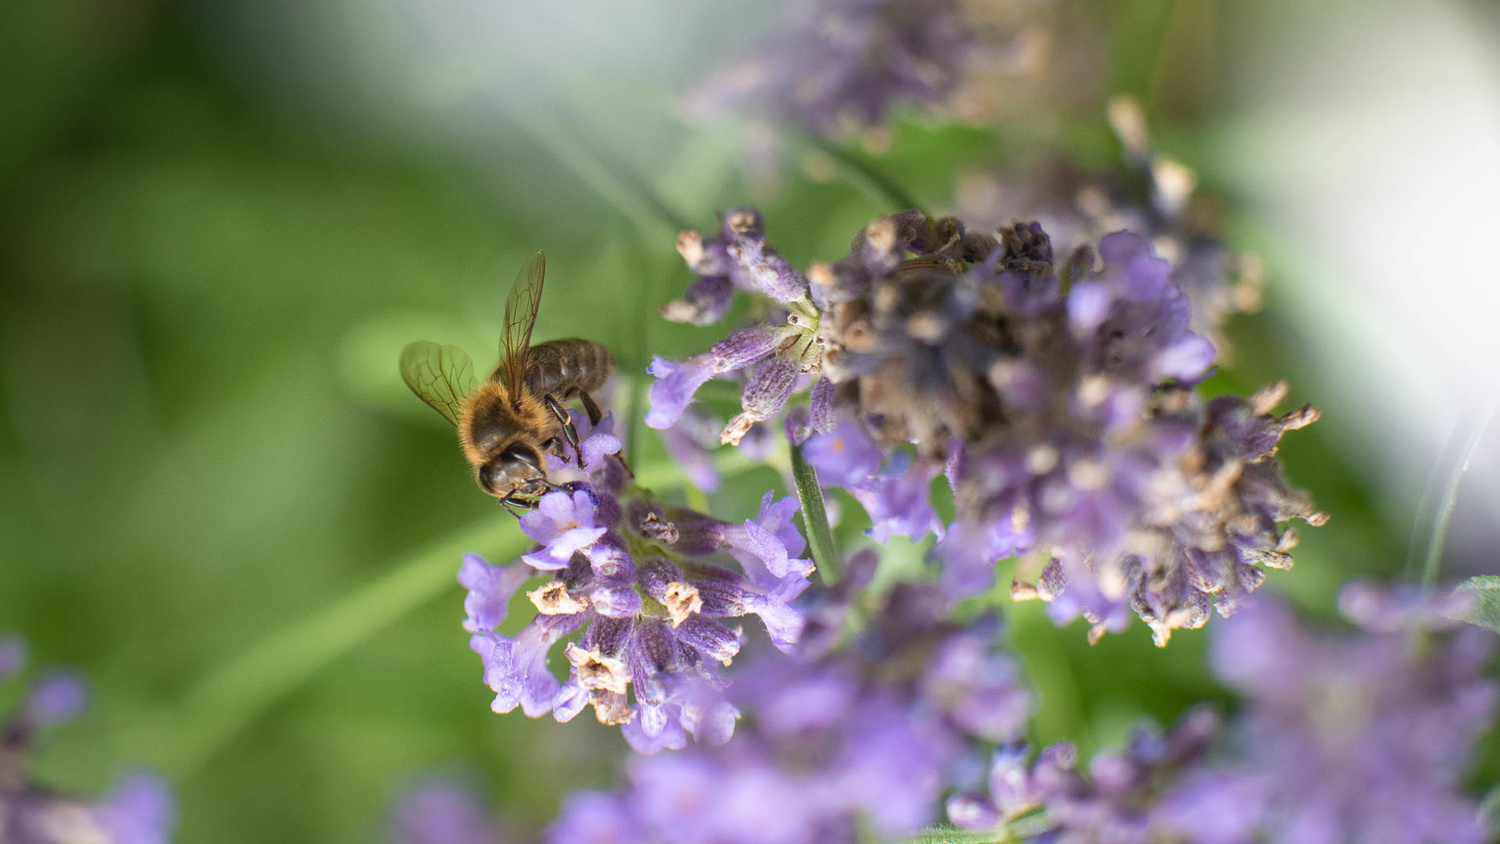 Honeybee searching for pollen on lavender